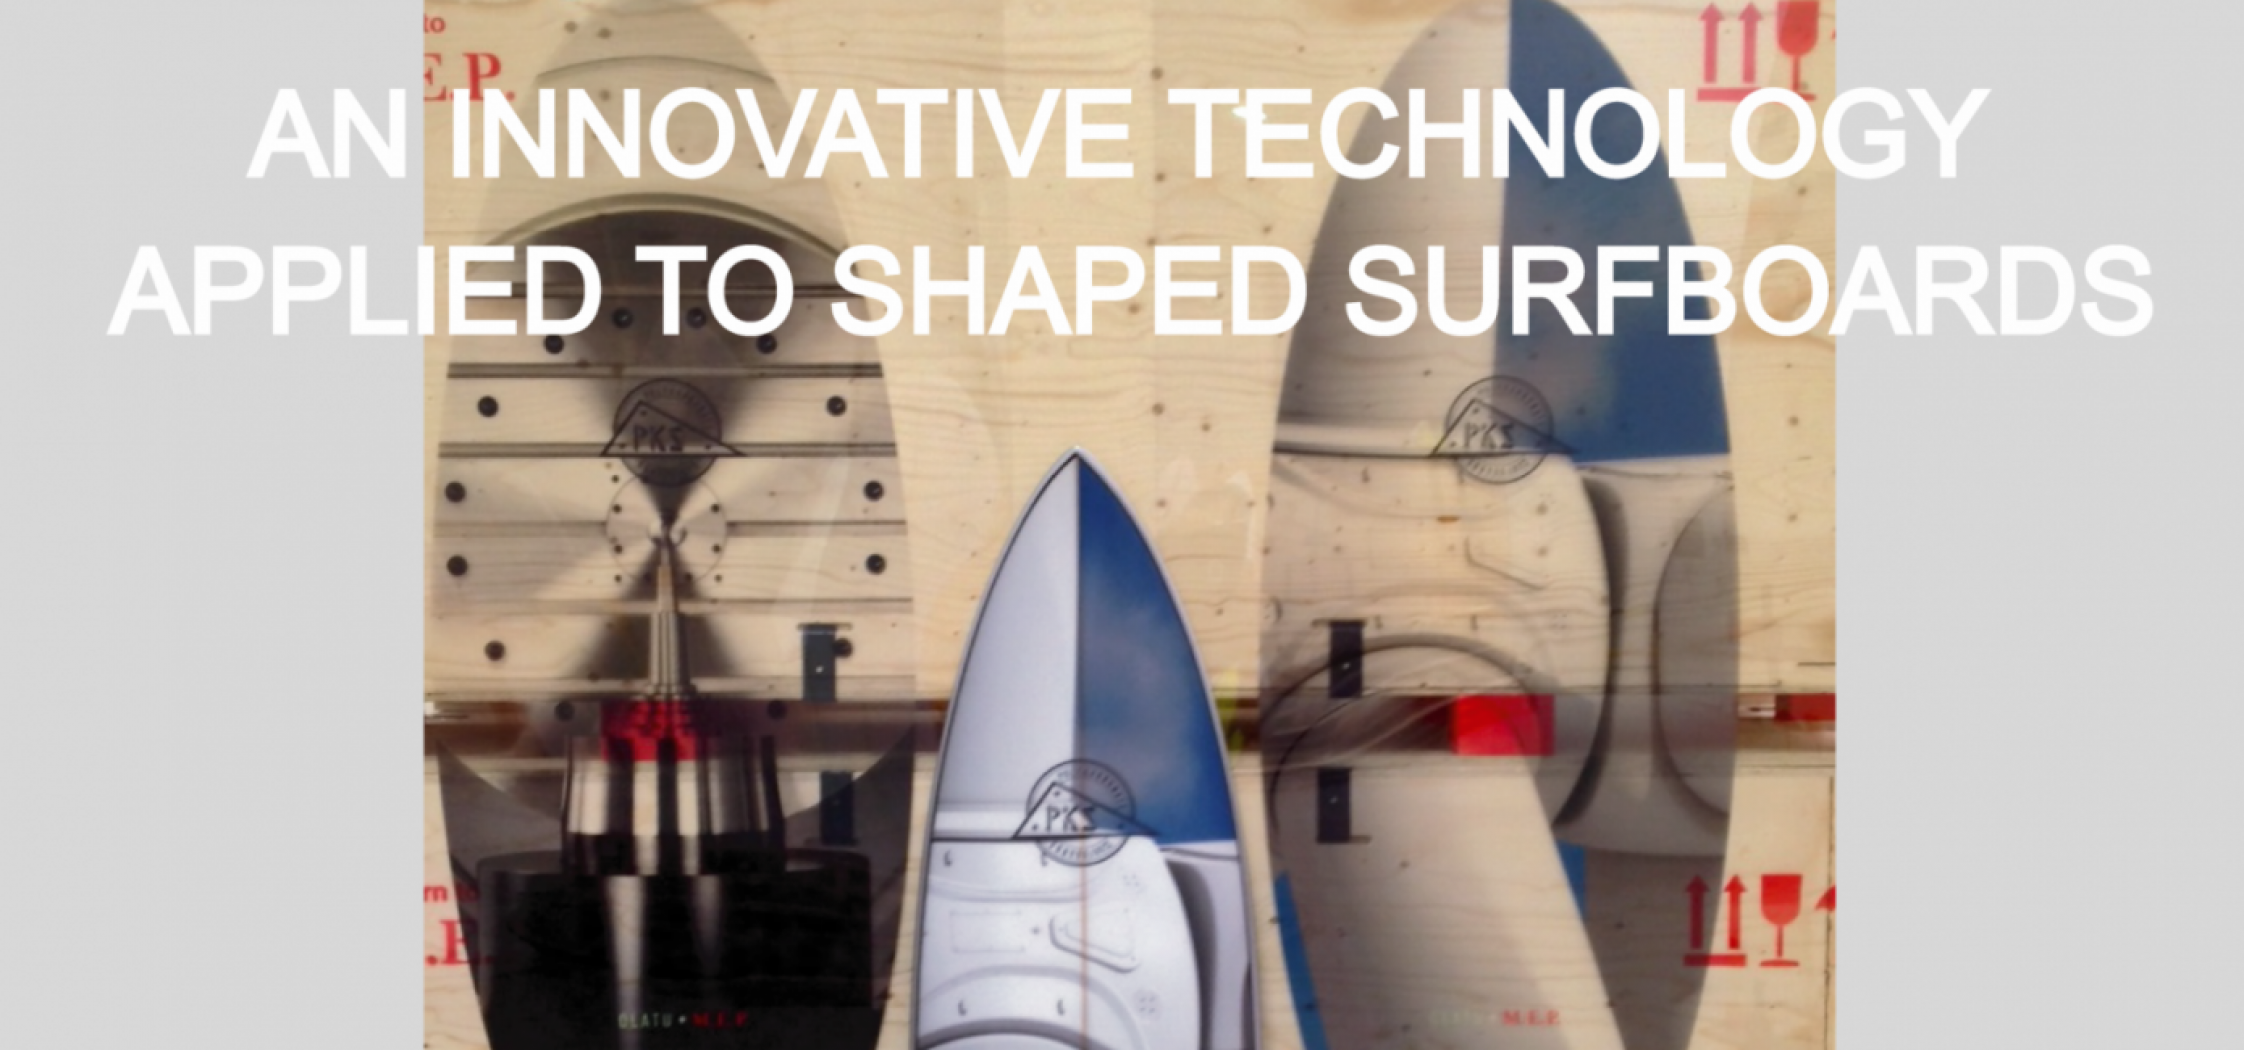 Polycarbonate surfboards